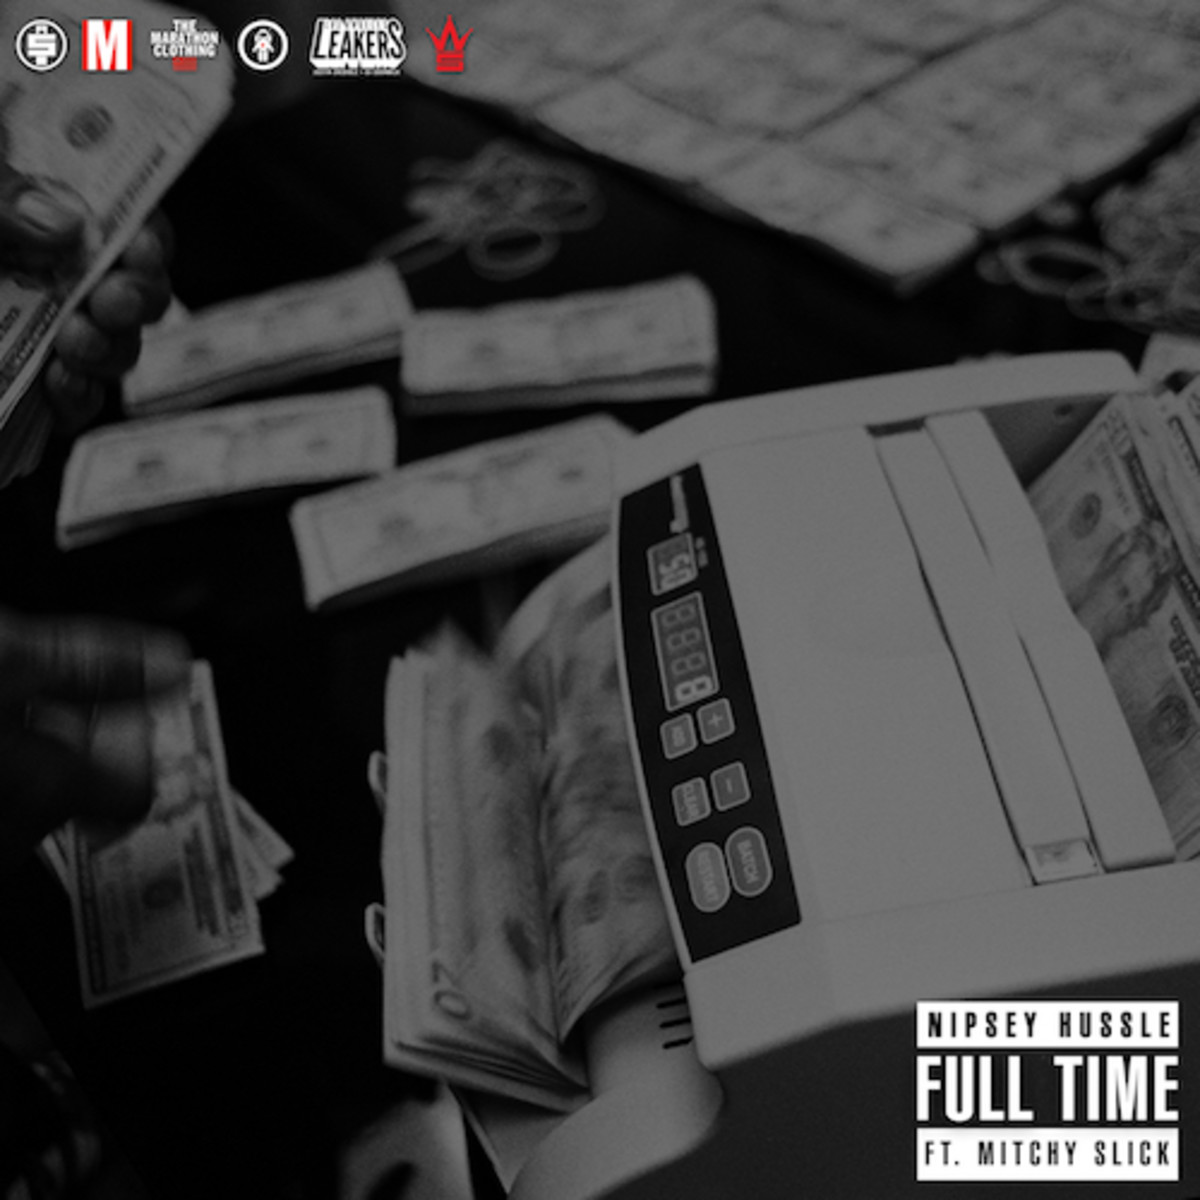 nipsey-hussle-full-time.jpg